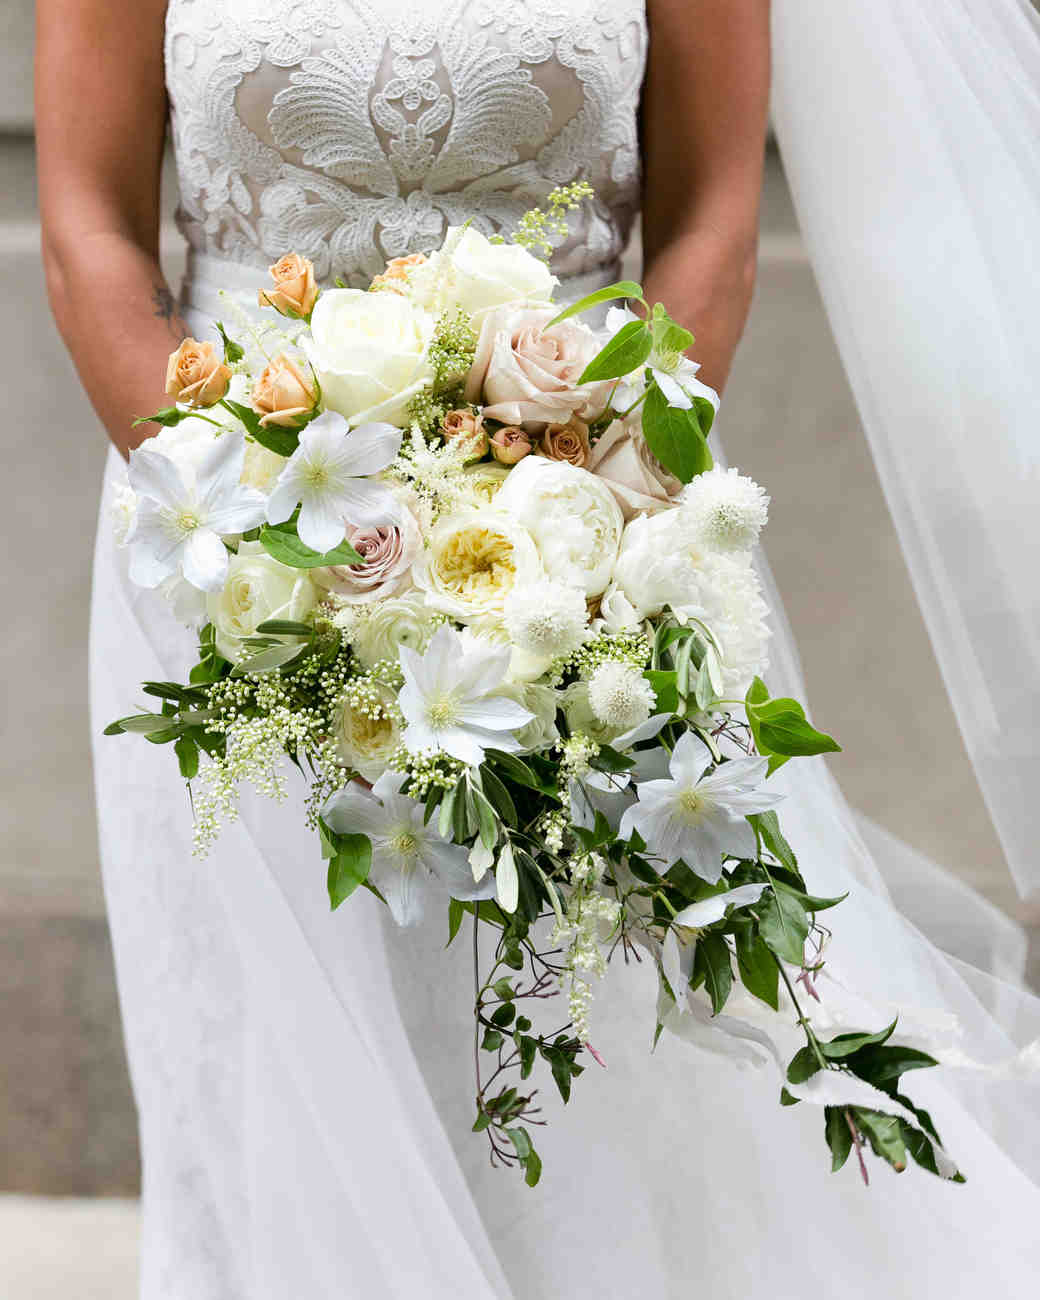 Wedding Flowers Bouquet Ideas: 32 Chic Cascading Wedding Bouquets